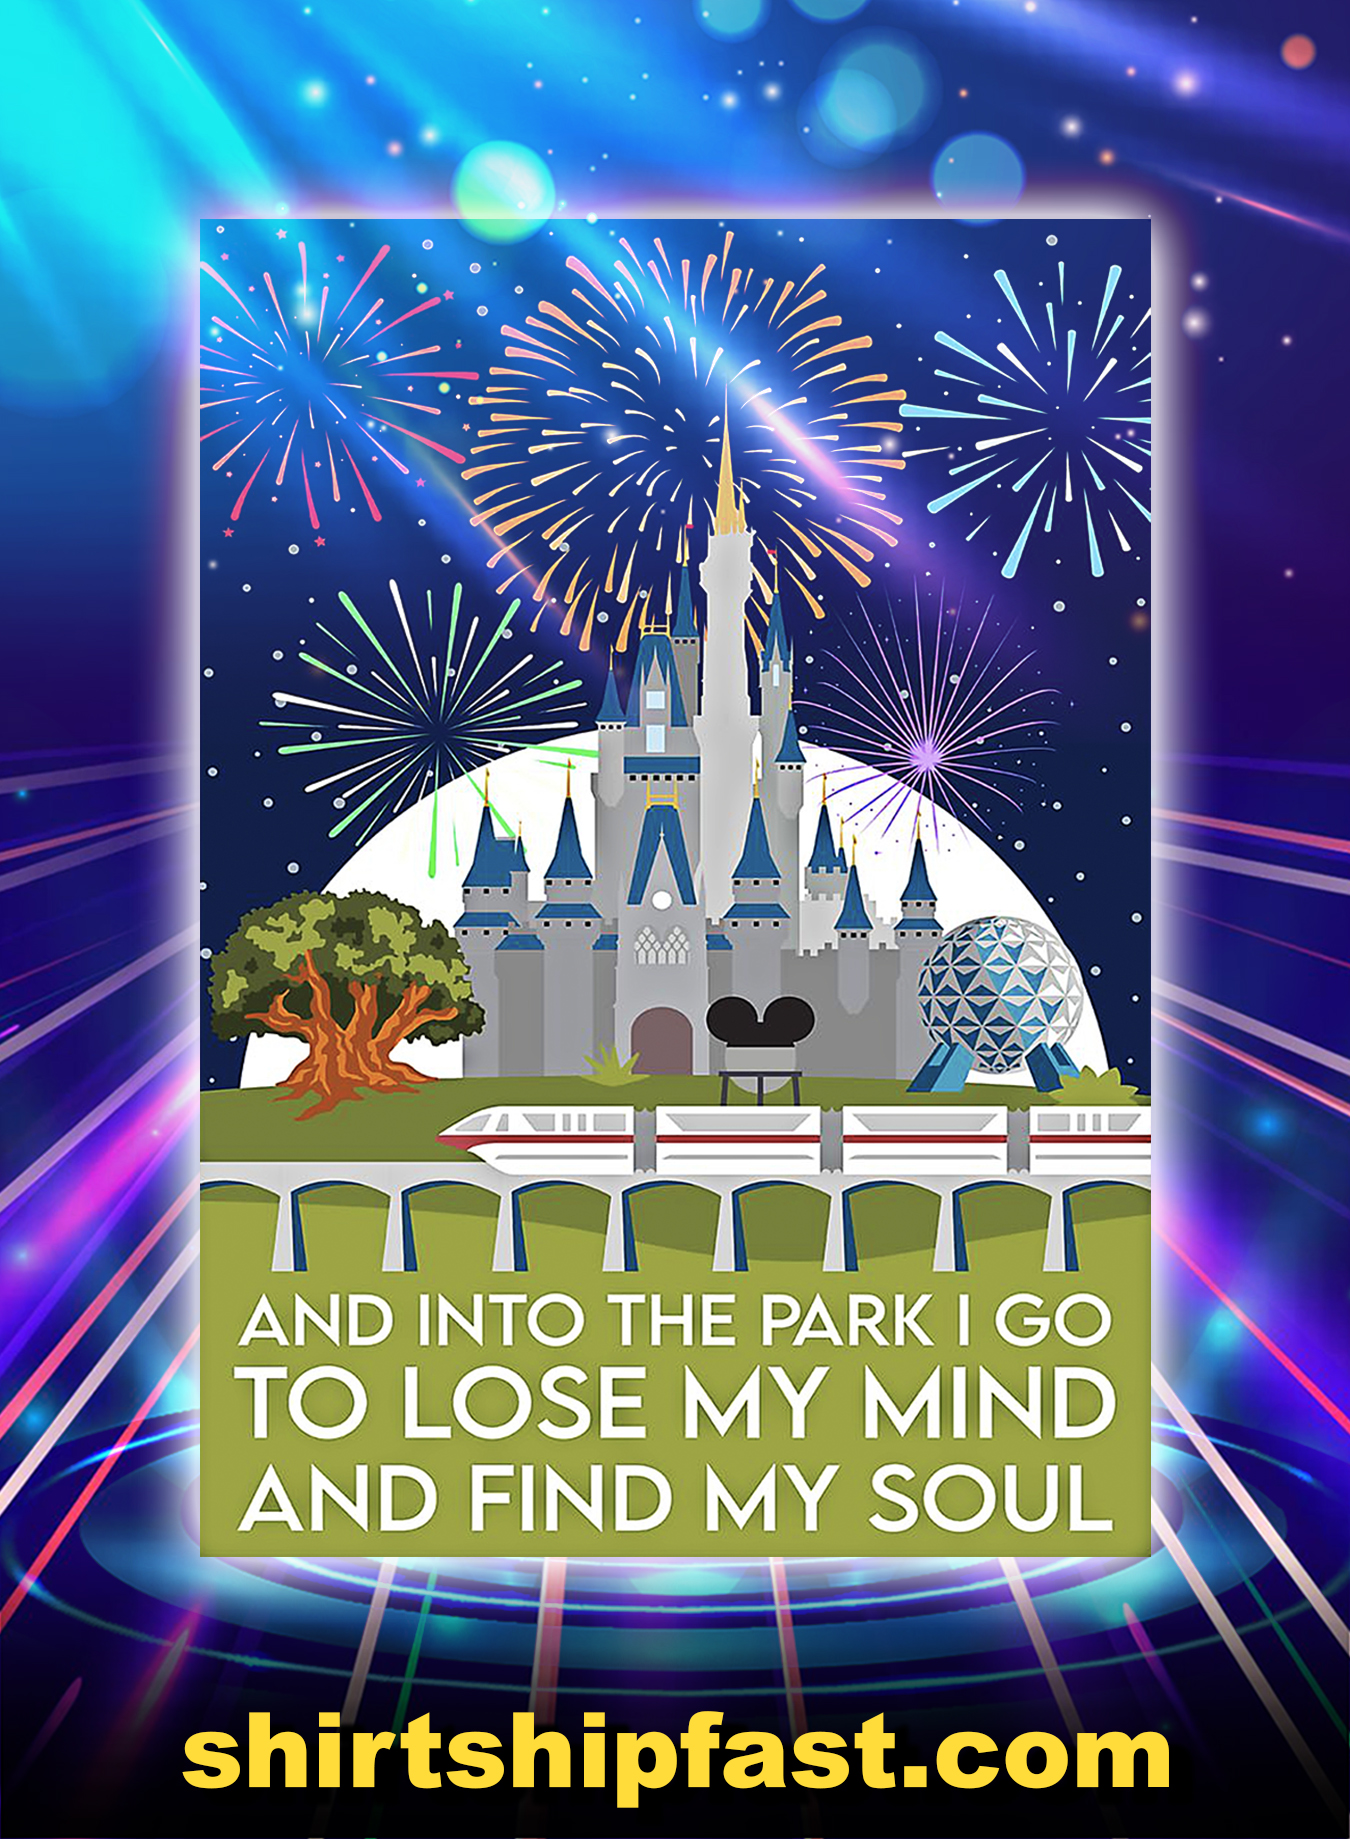 And into the park i go to lose my mind and find my soul poster - A2